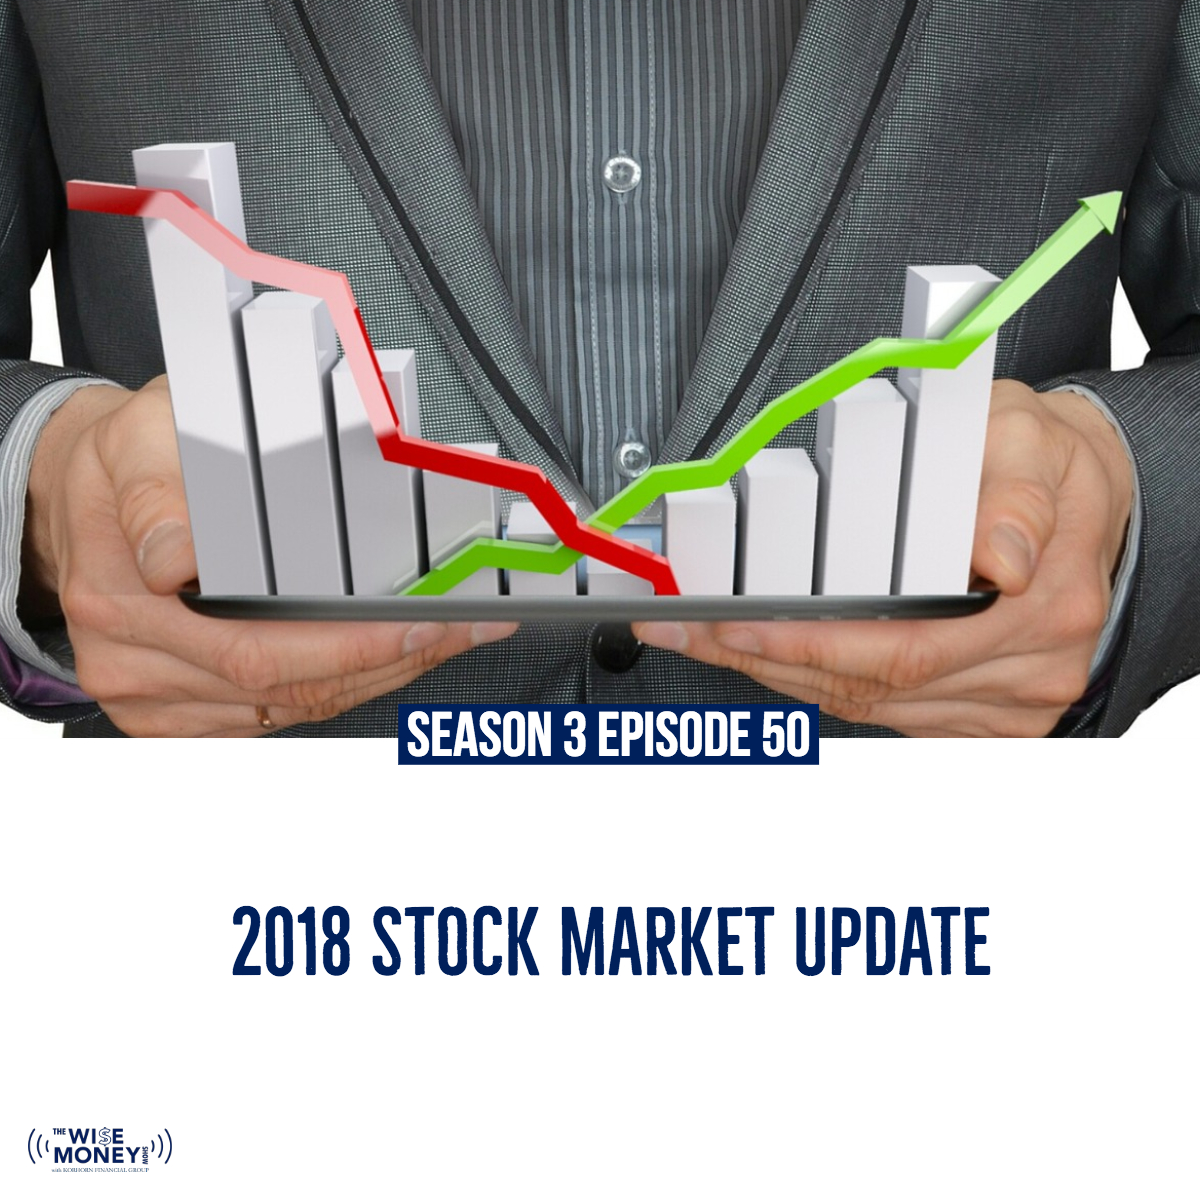 S3E50: 2018 Stock Market Update